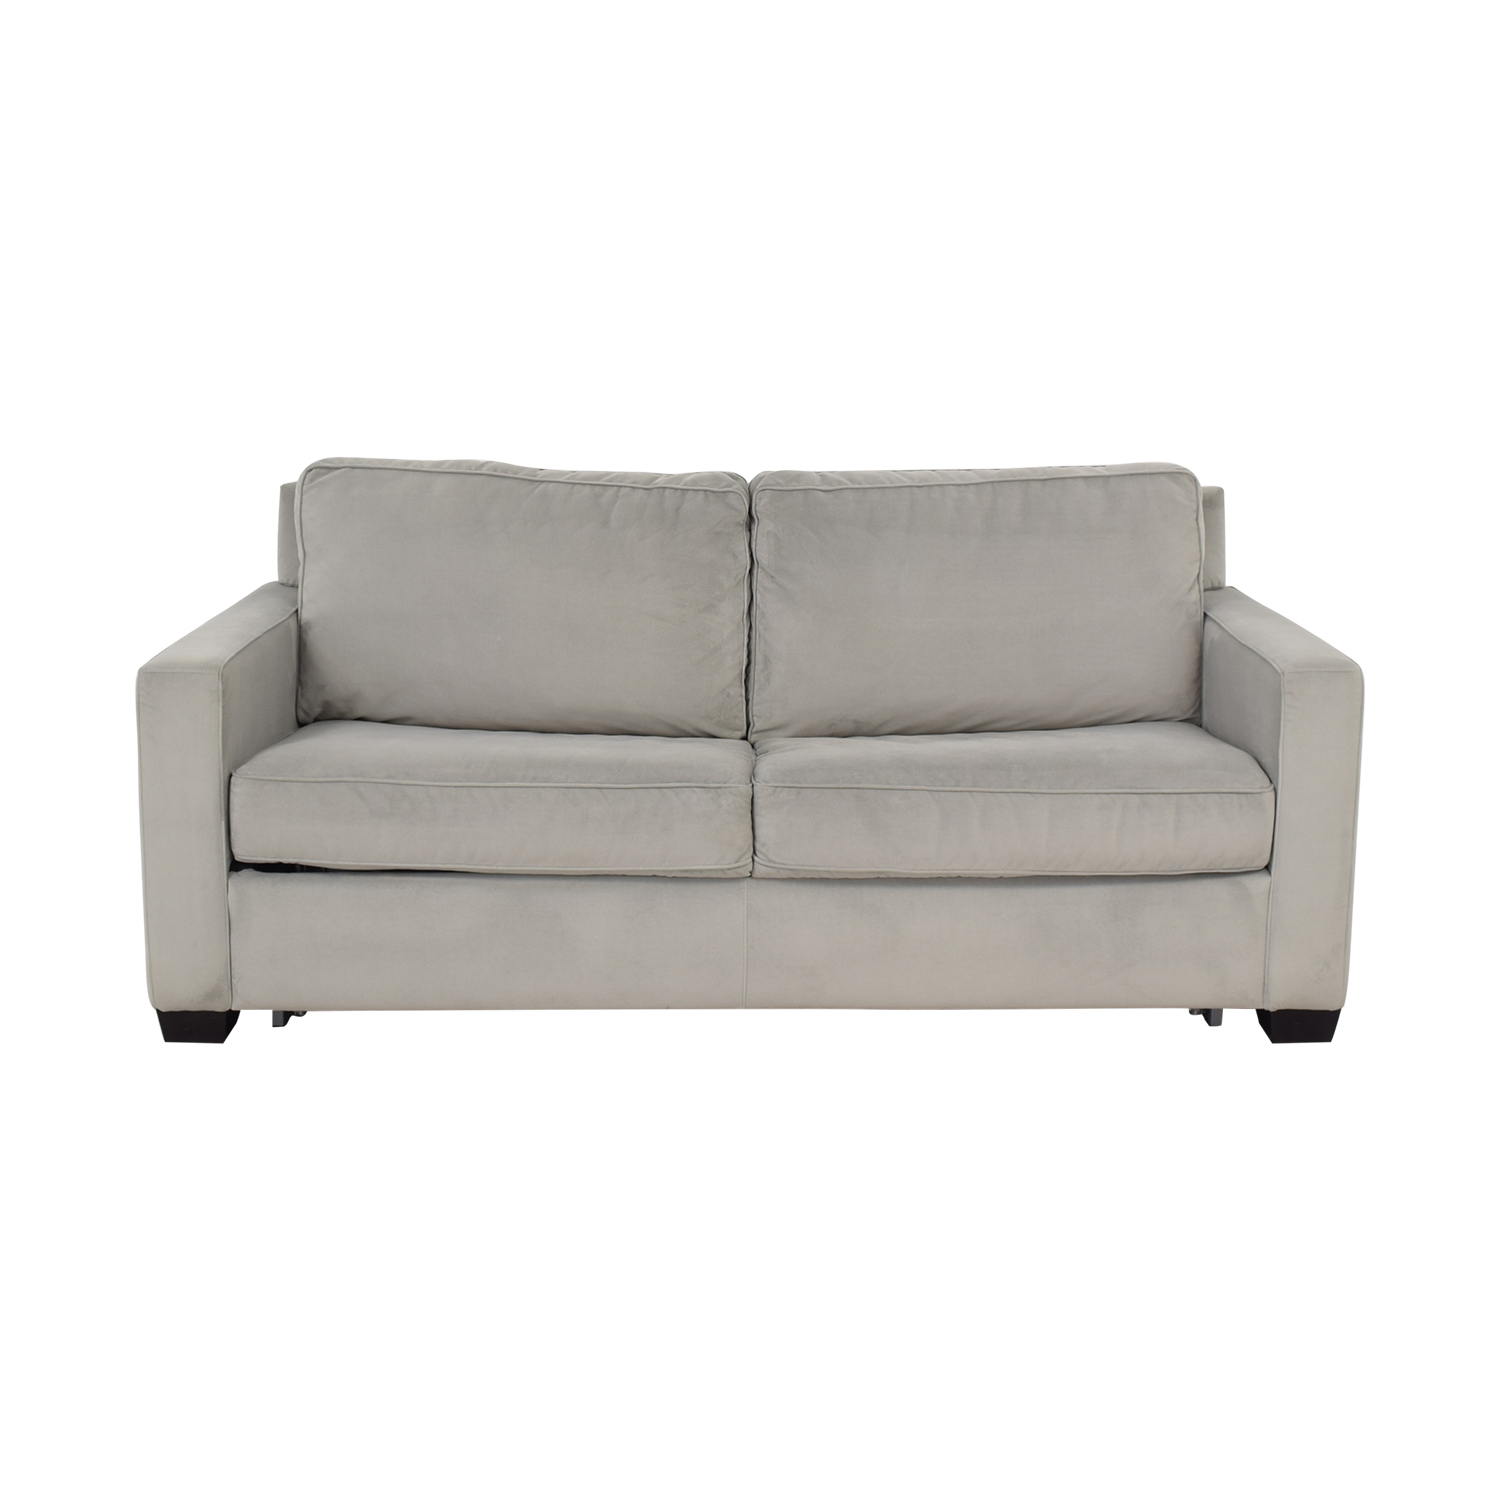 West Elm West Elm Henry Pull-Down Full Sleeper Sofa price